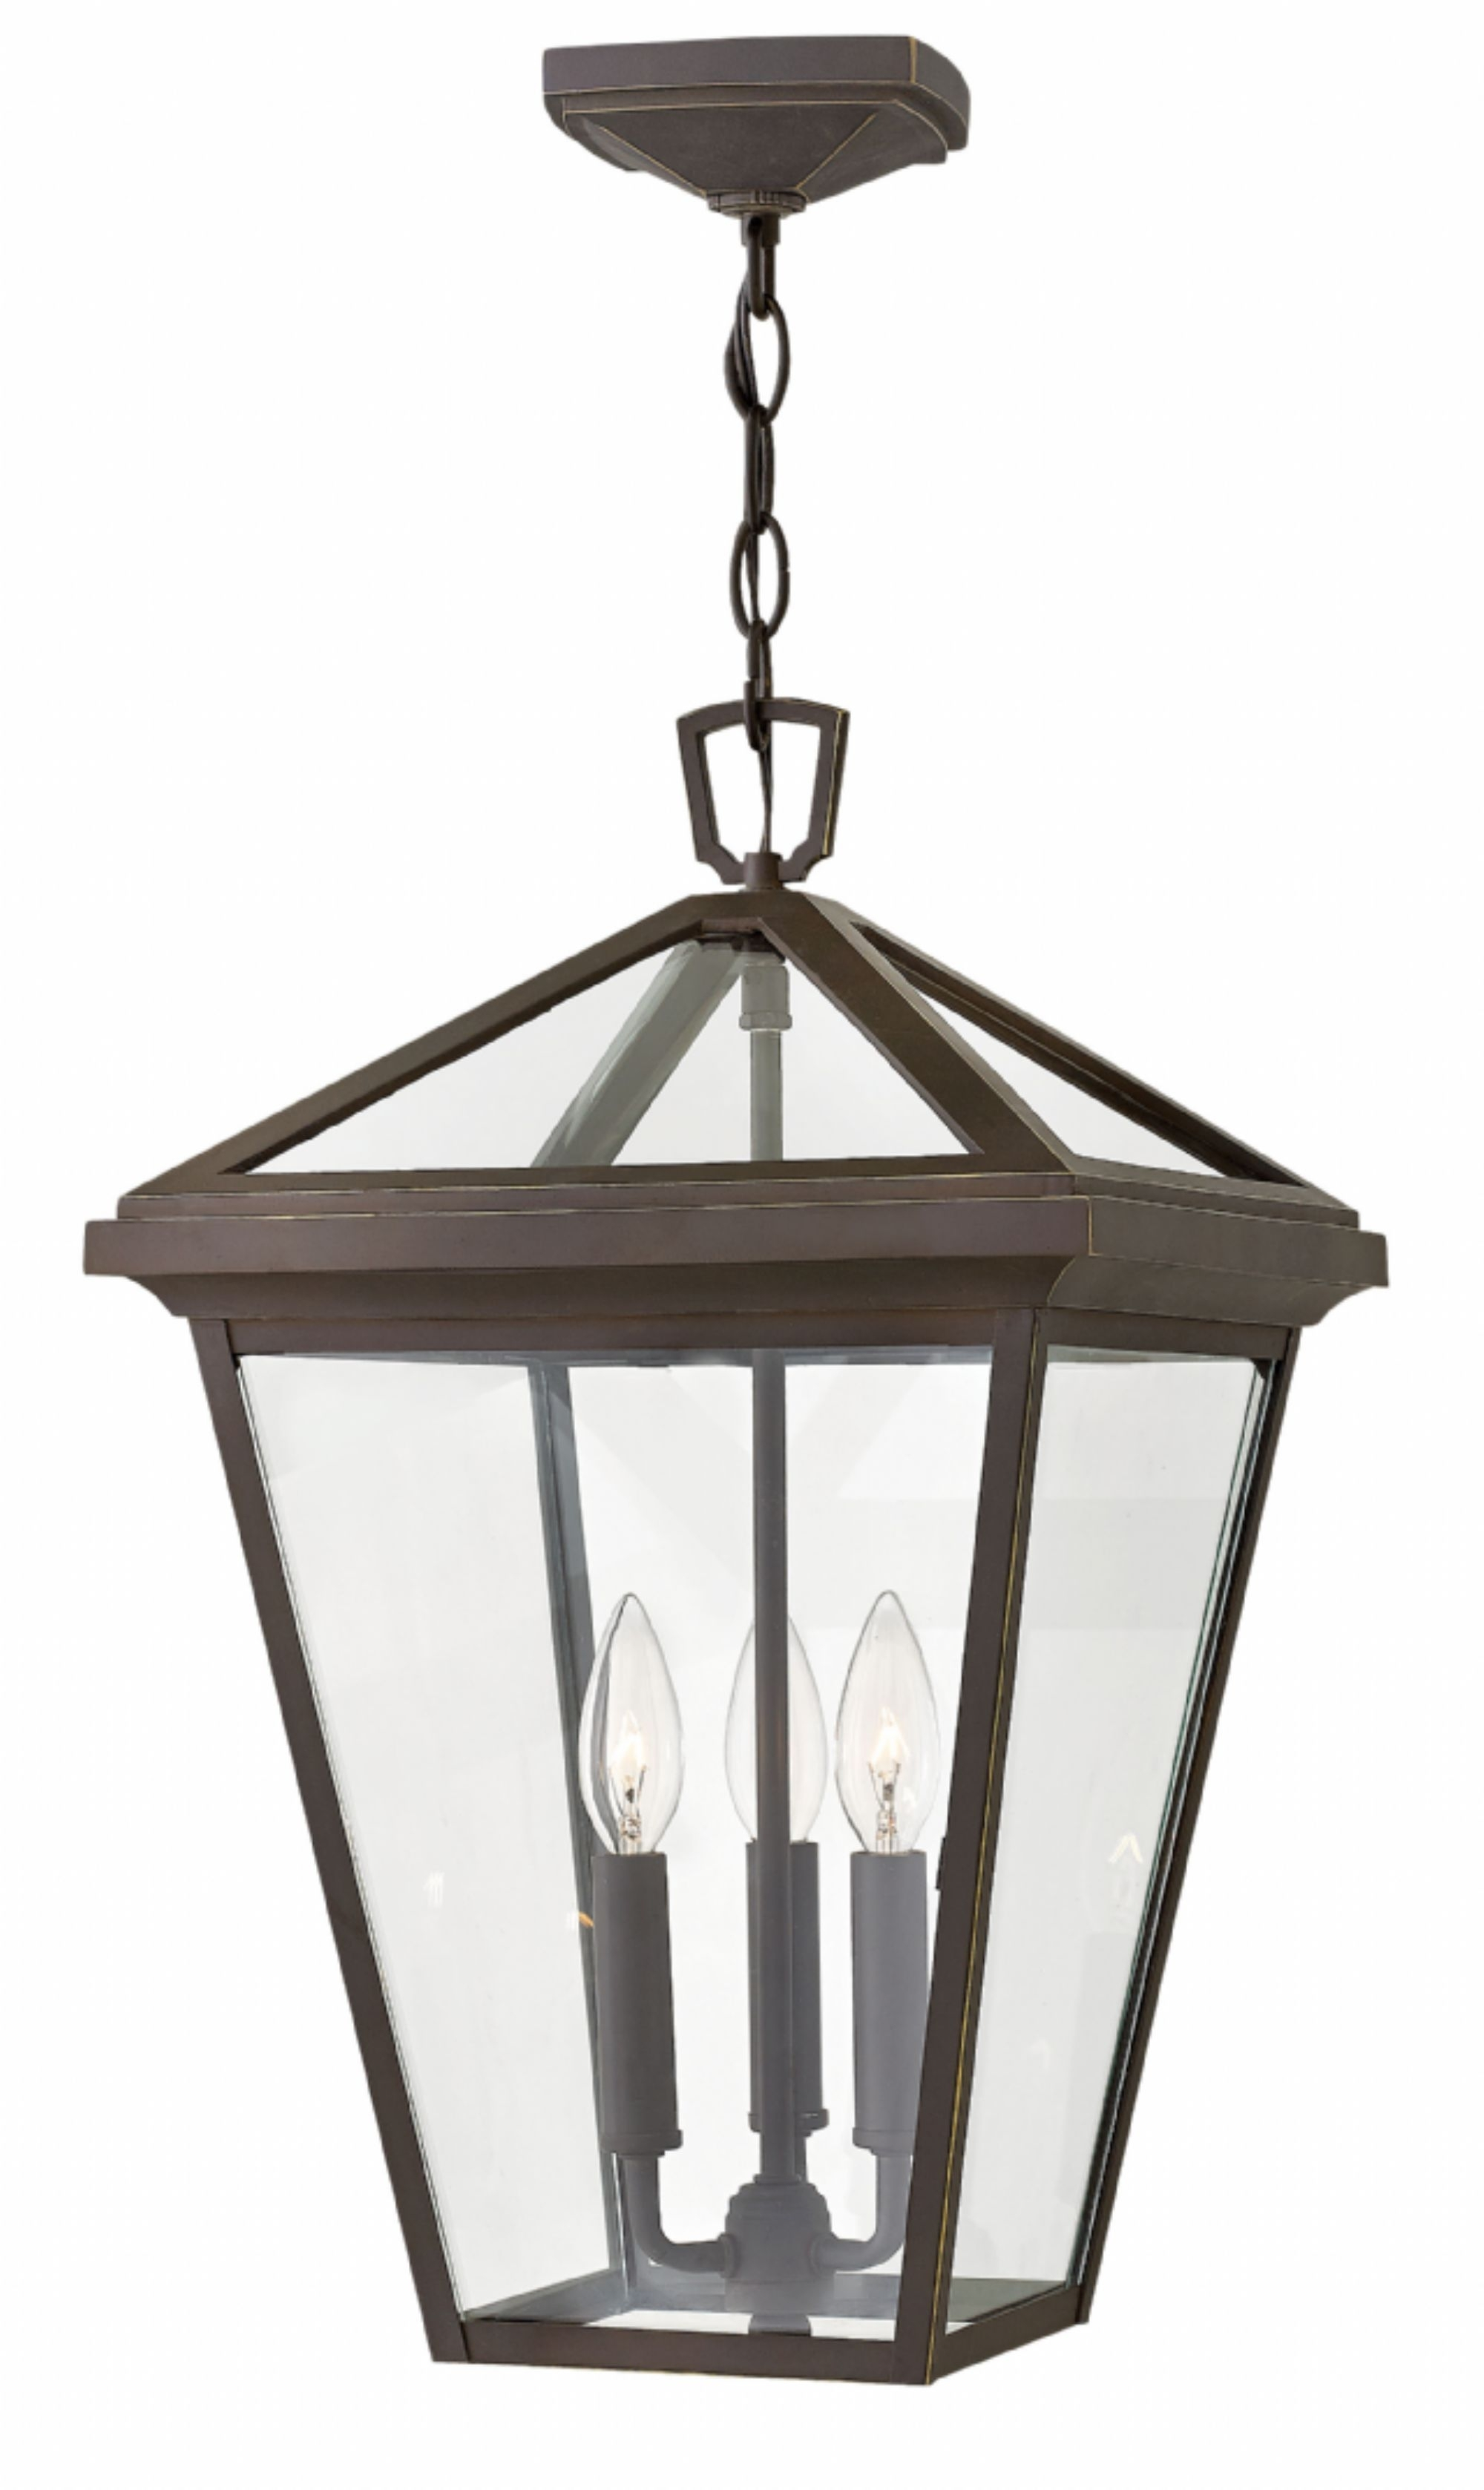 Hinkley Lighting – Alford Place 2562Oz | 1205 Lighting | Pinterest Pertaining To Brass Porch Hinkley Lighting (#8 of 15)